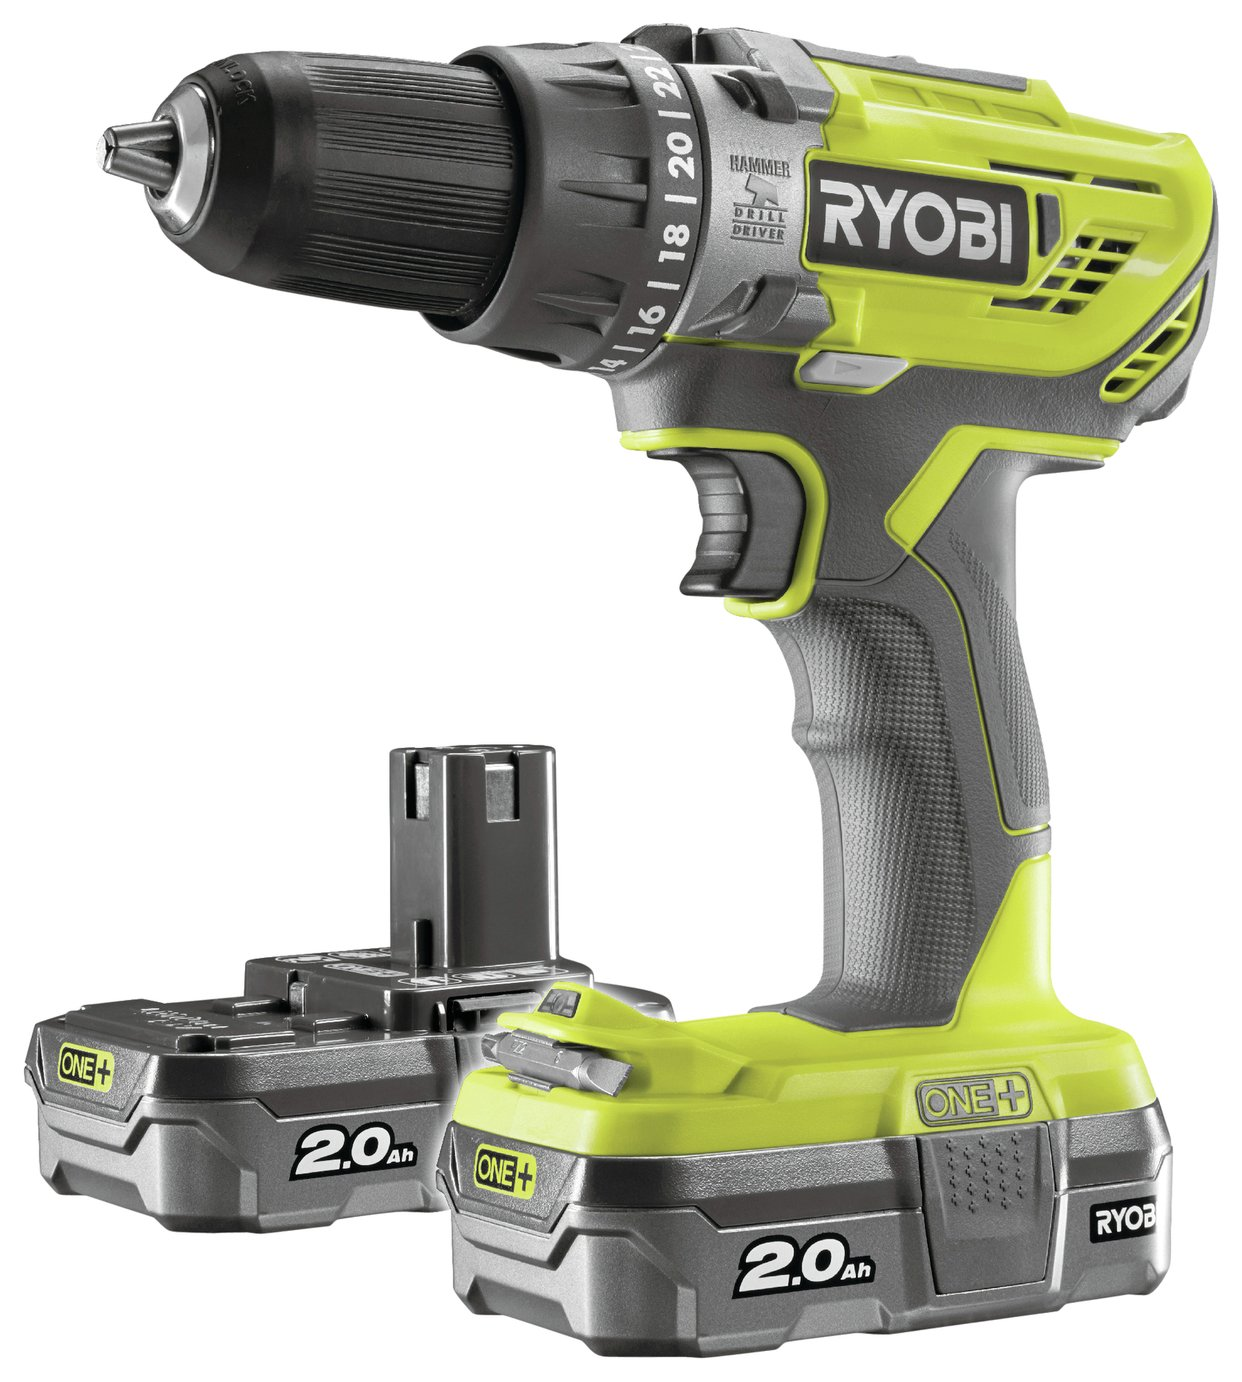 Ryobi ONE+ 2Ah Cordless Combi Drill with 2 Batteries - 18V